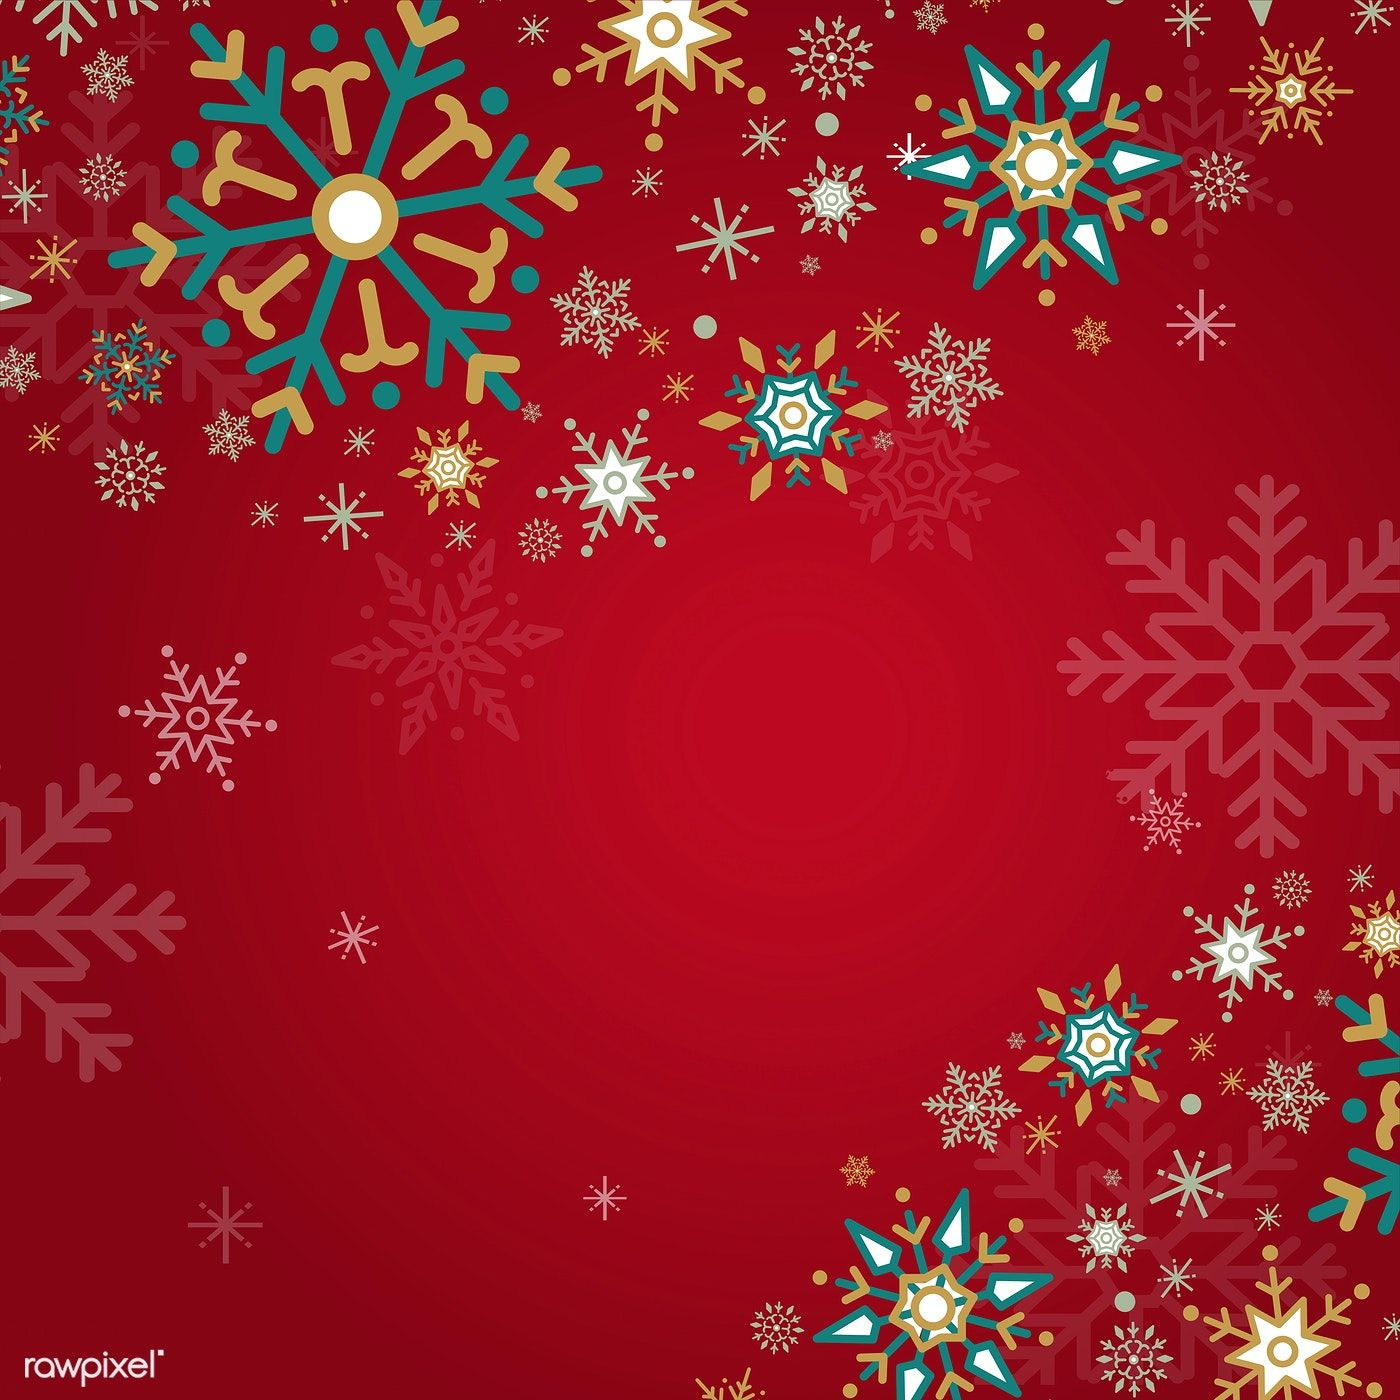 Red Christmas Winter Holiday Background With Snowflake Vector Free Image By Rawpixel Com Christmas Paintings Holiday Background Winter Wallpaper